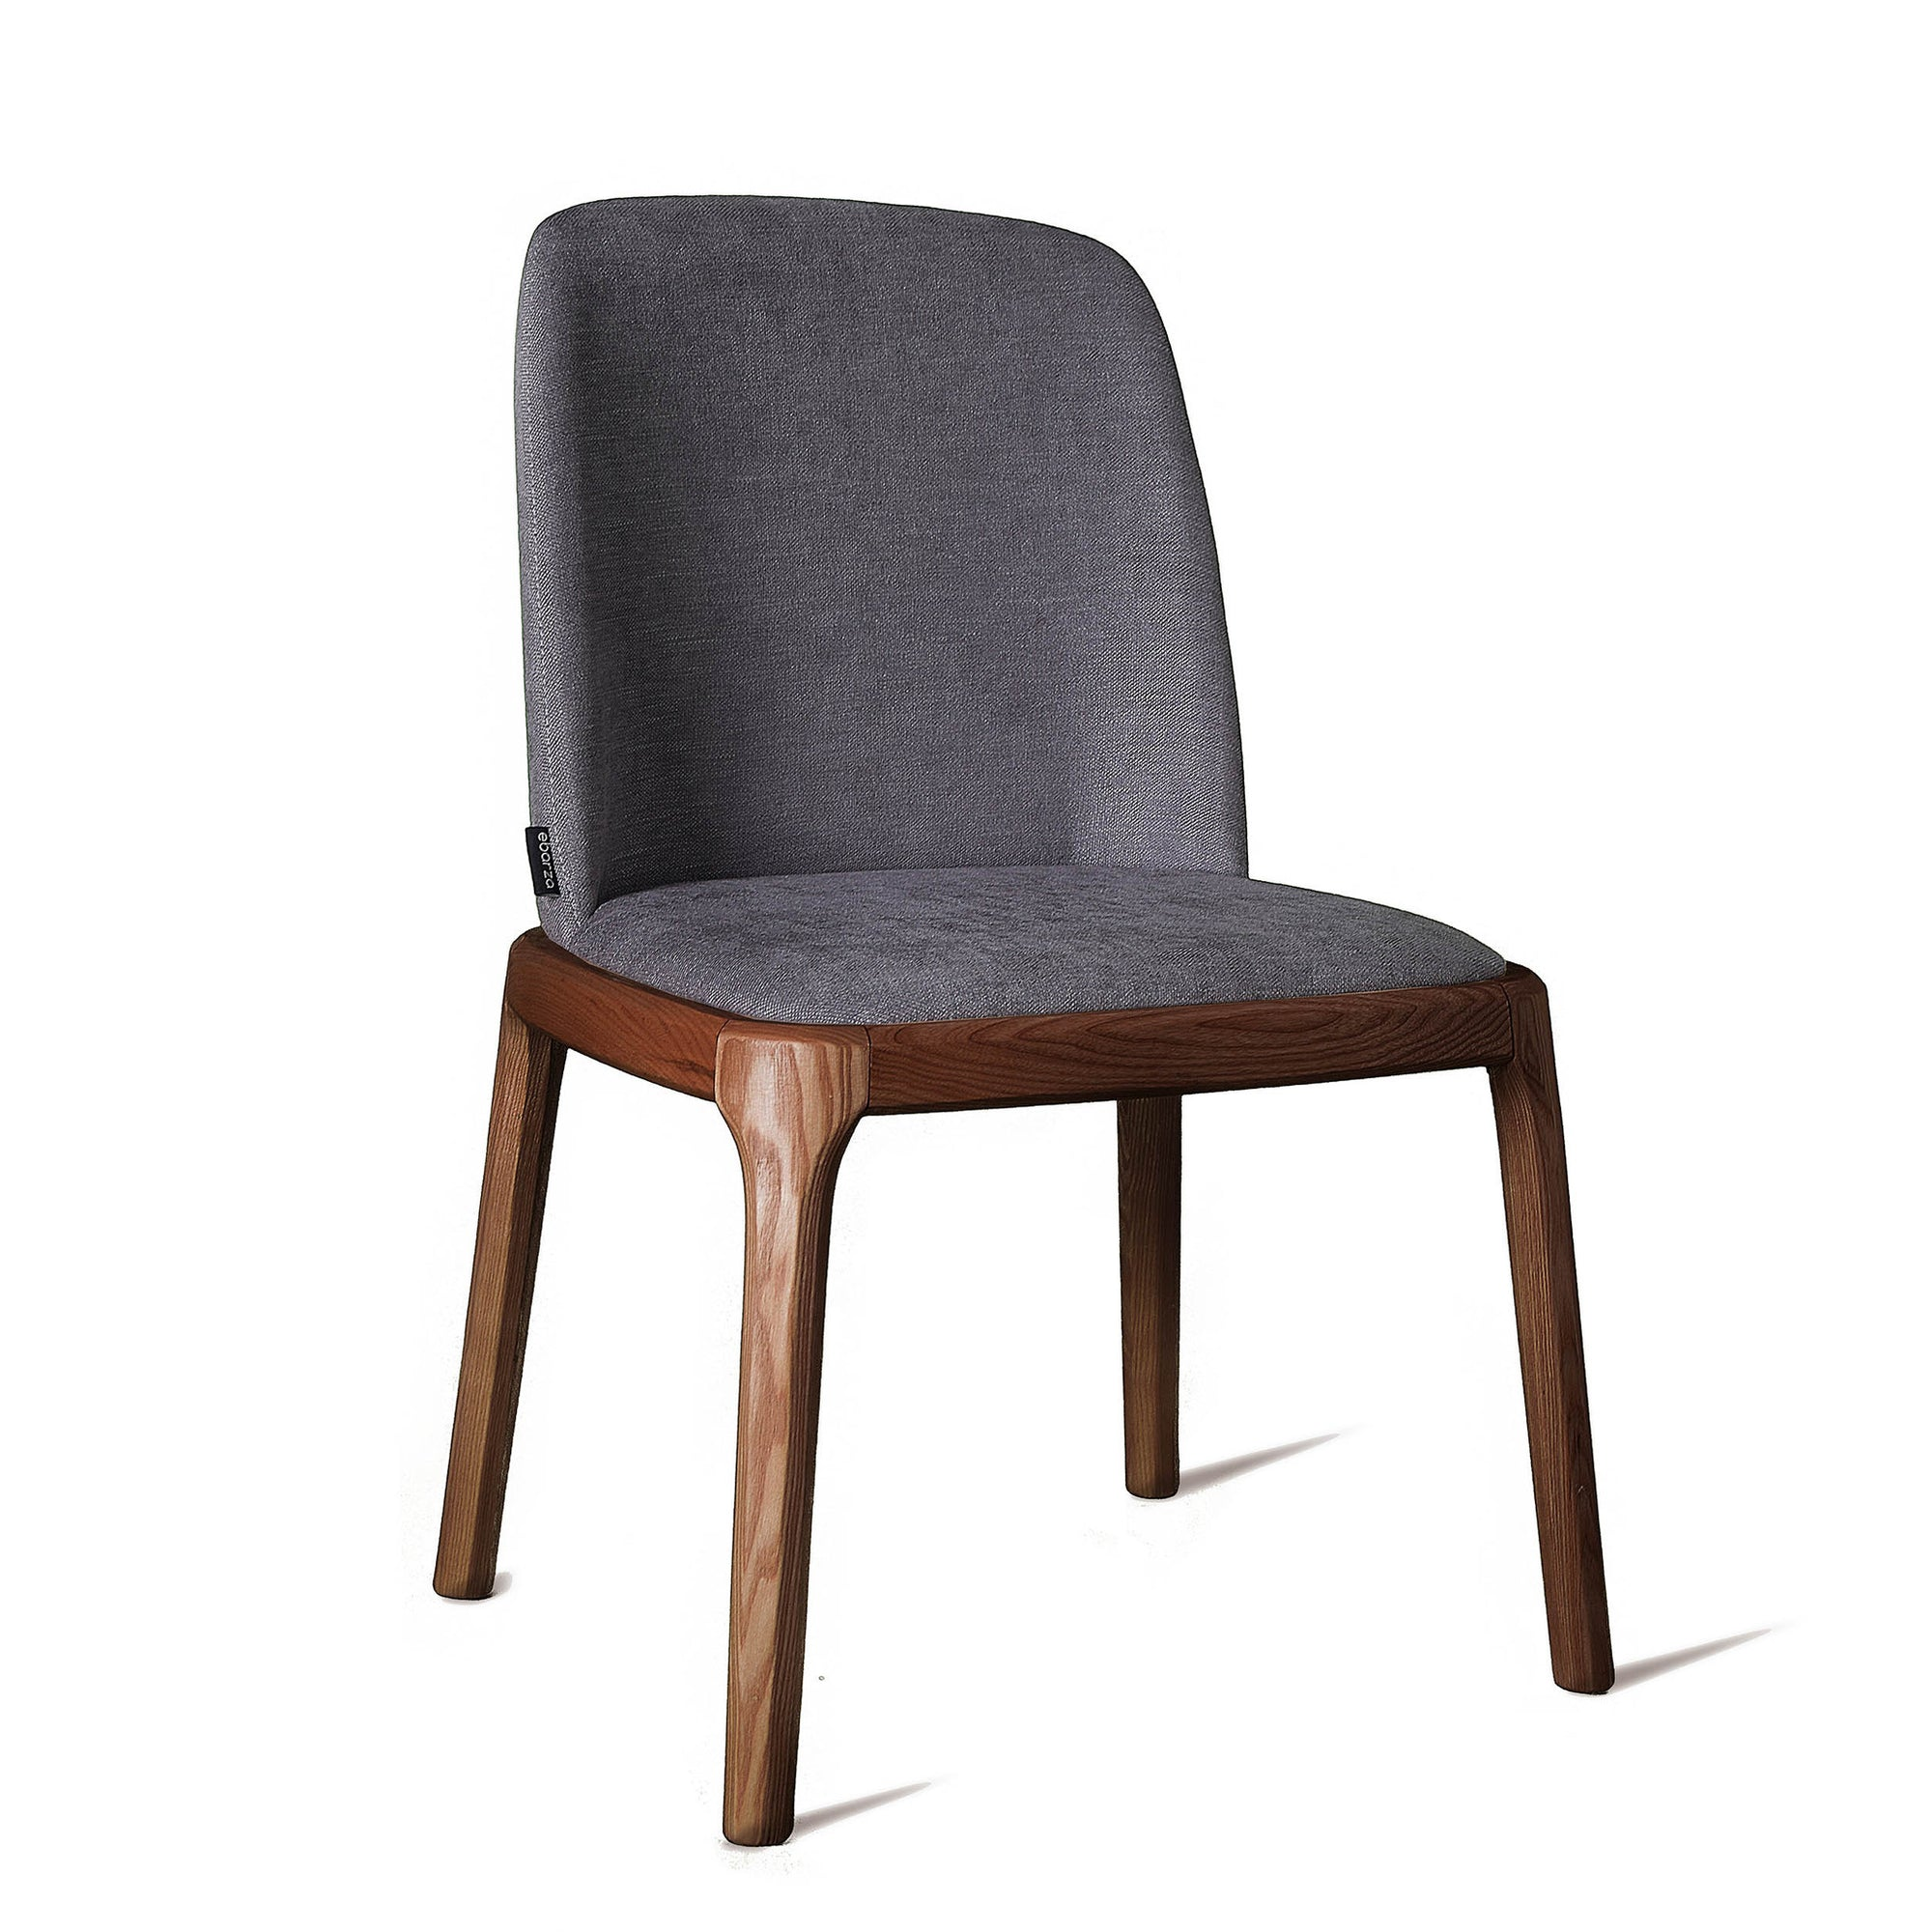 Chair - Dining Chair Solid Ash Wood  GRA-NA-W